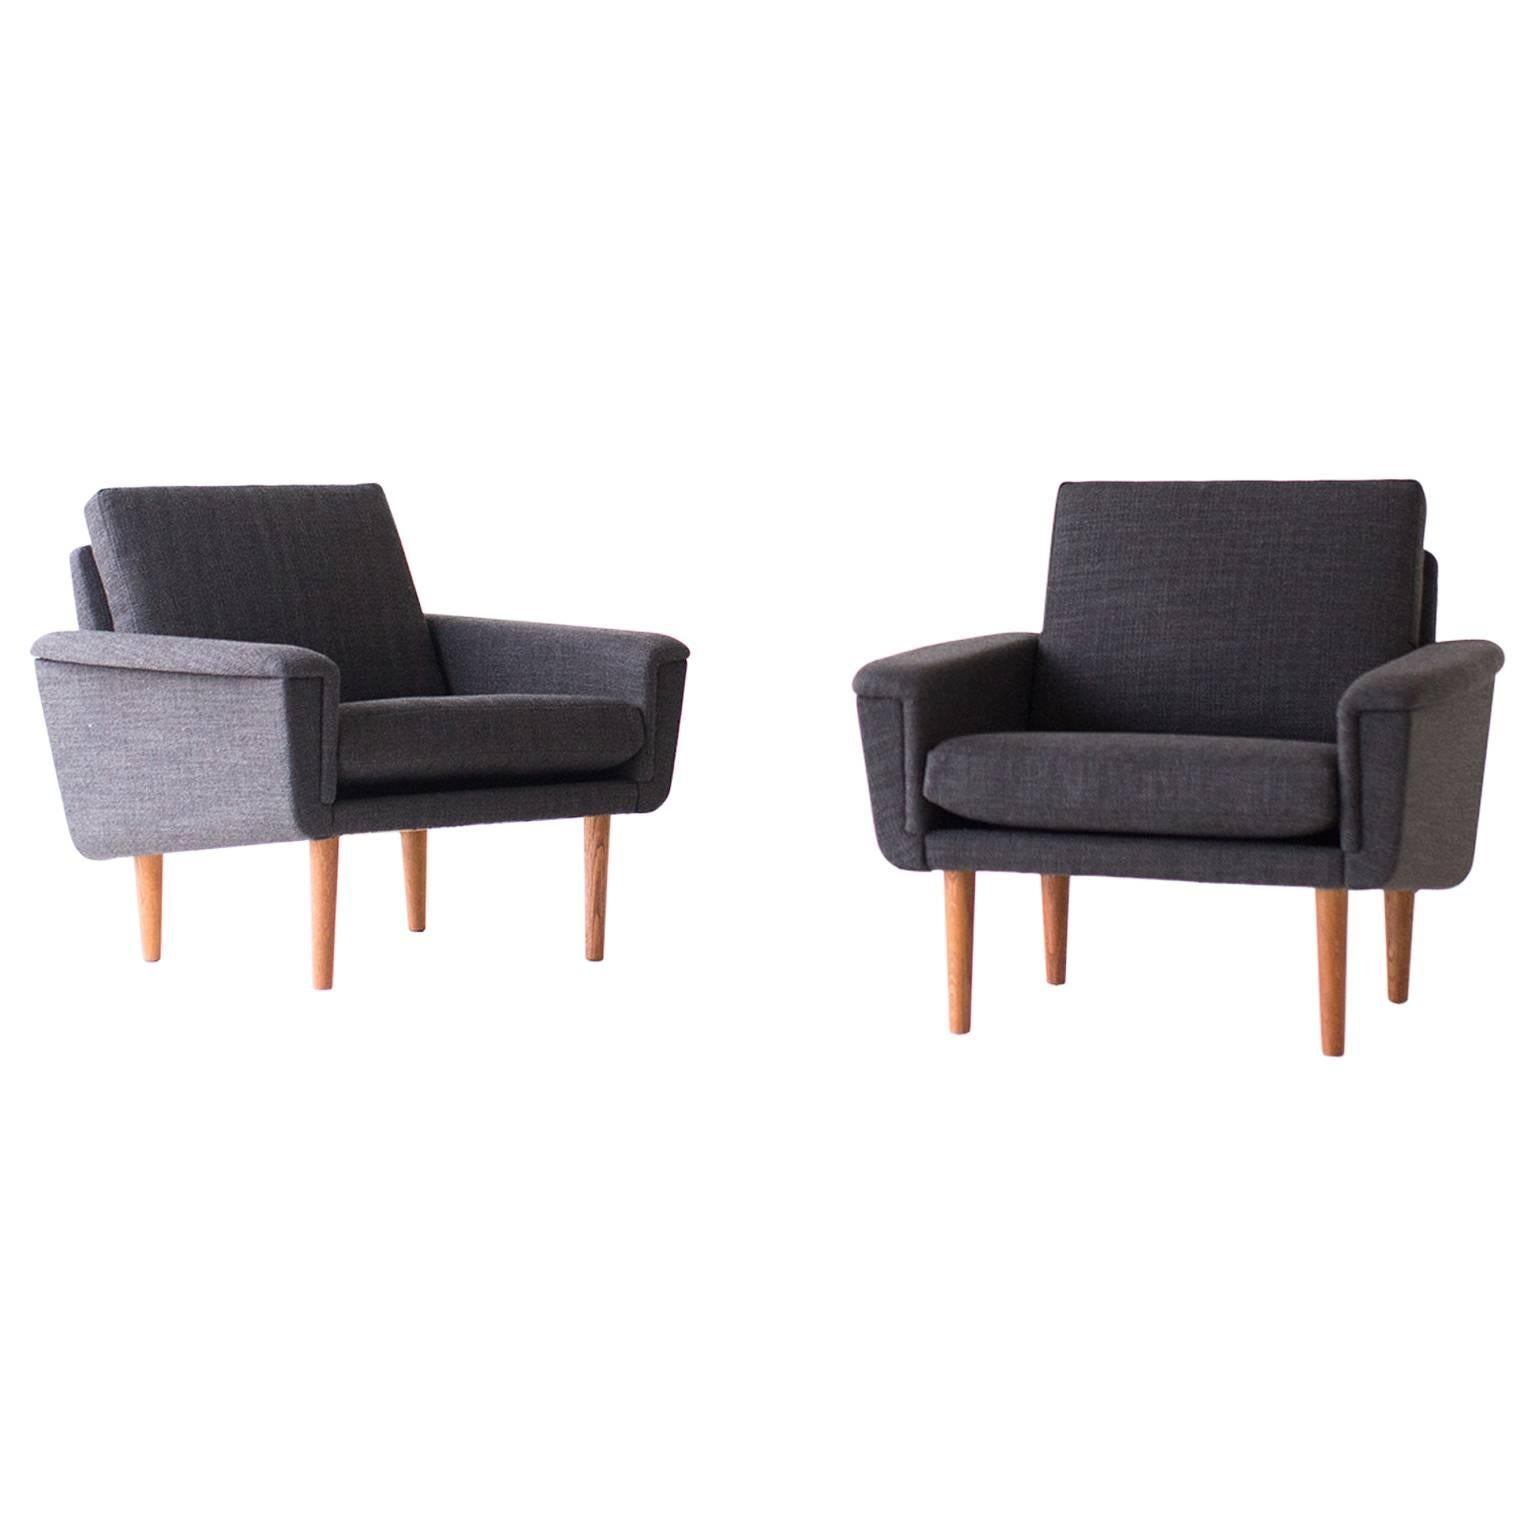 Folke Ohlsson Lounge Chairs for DUX